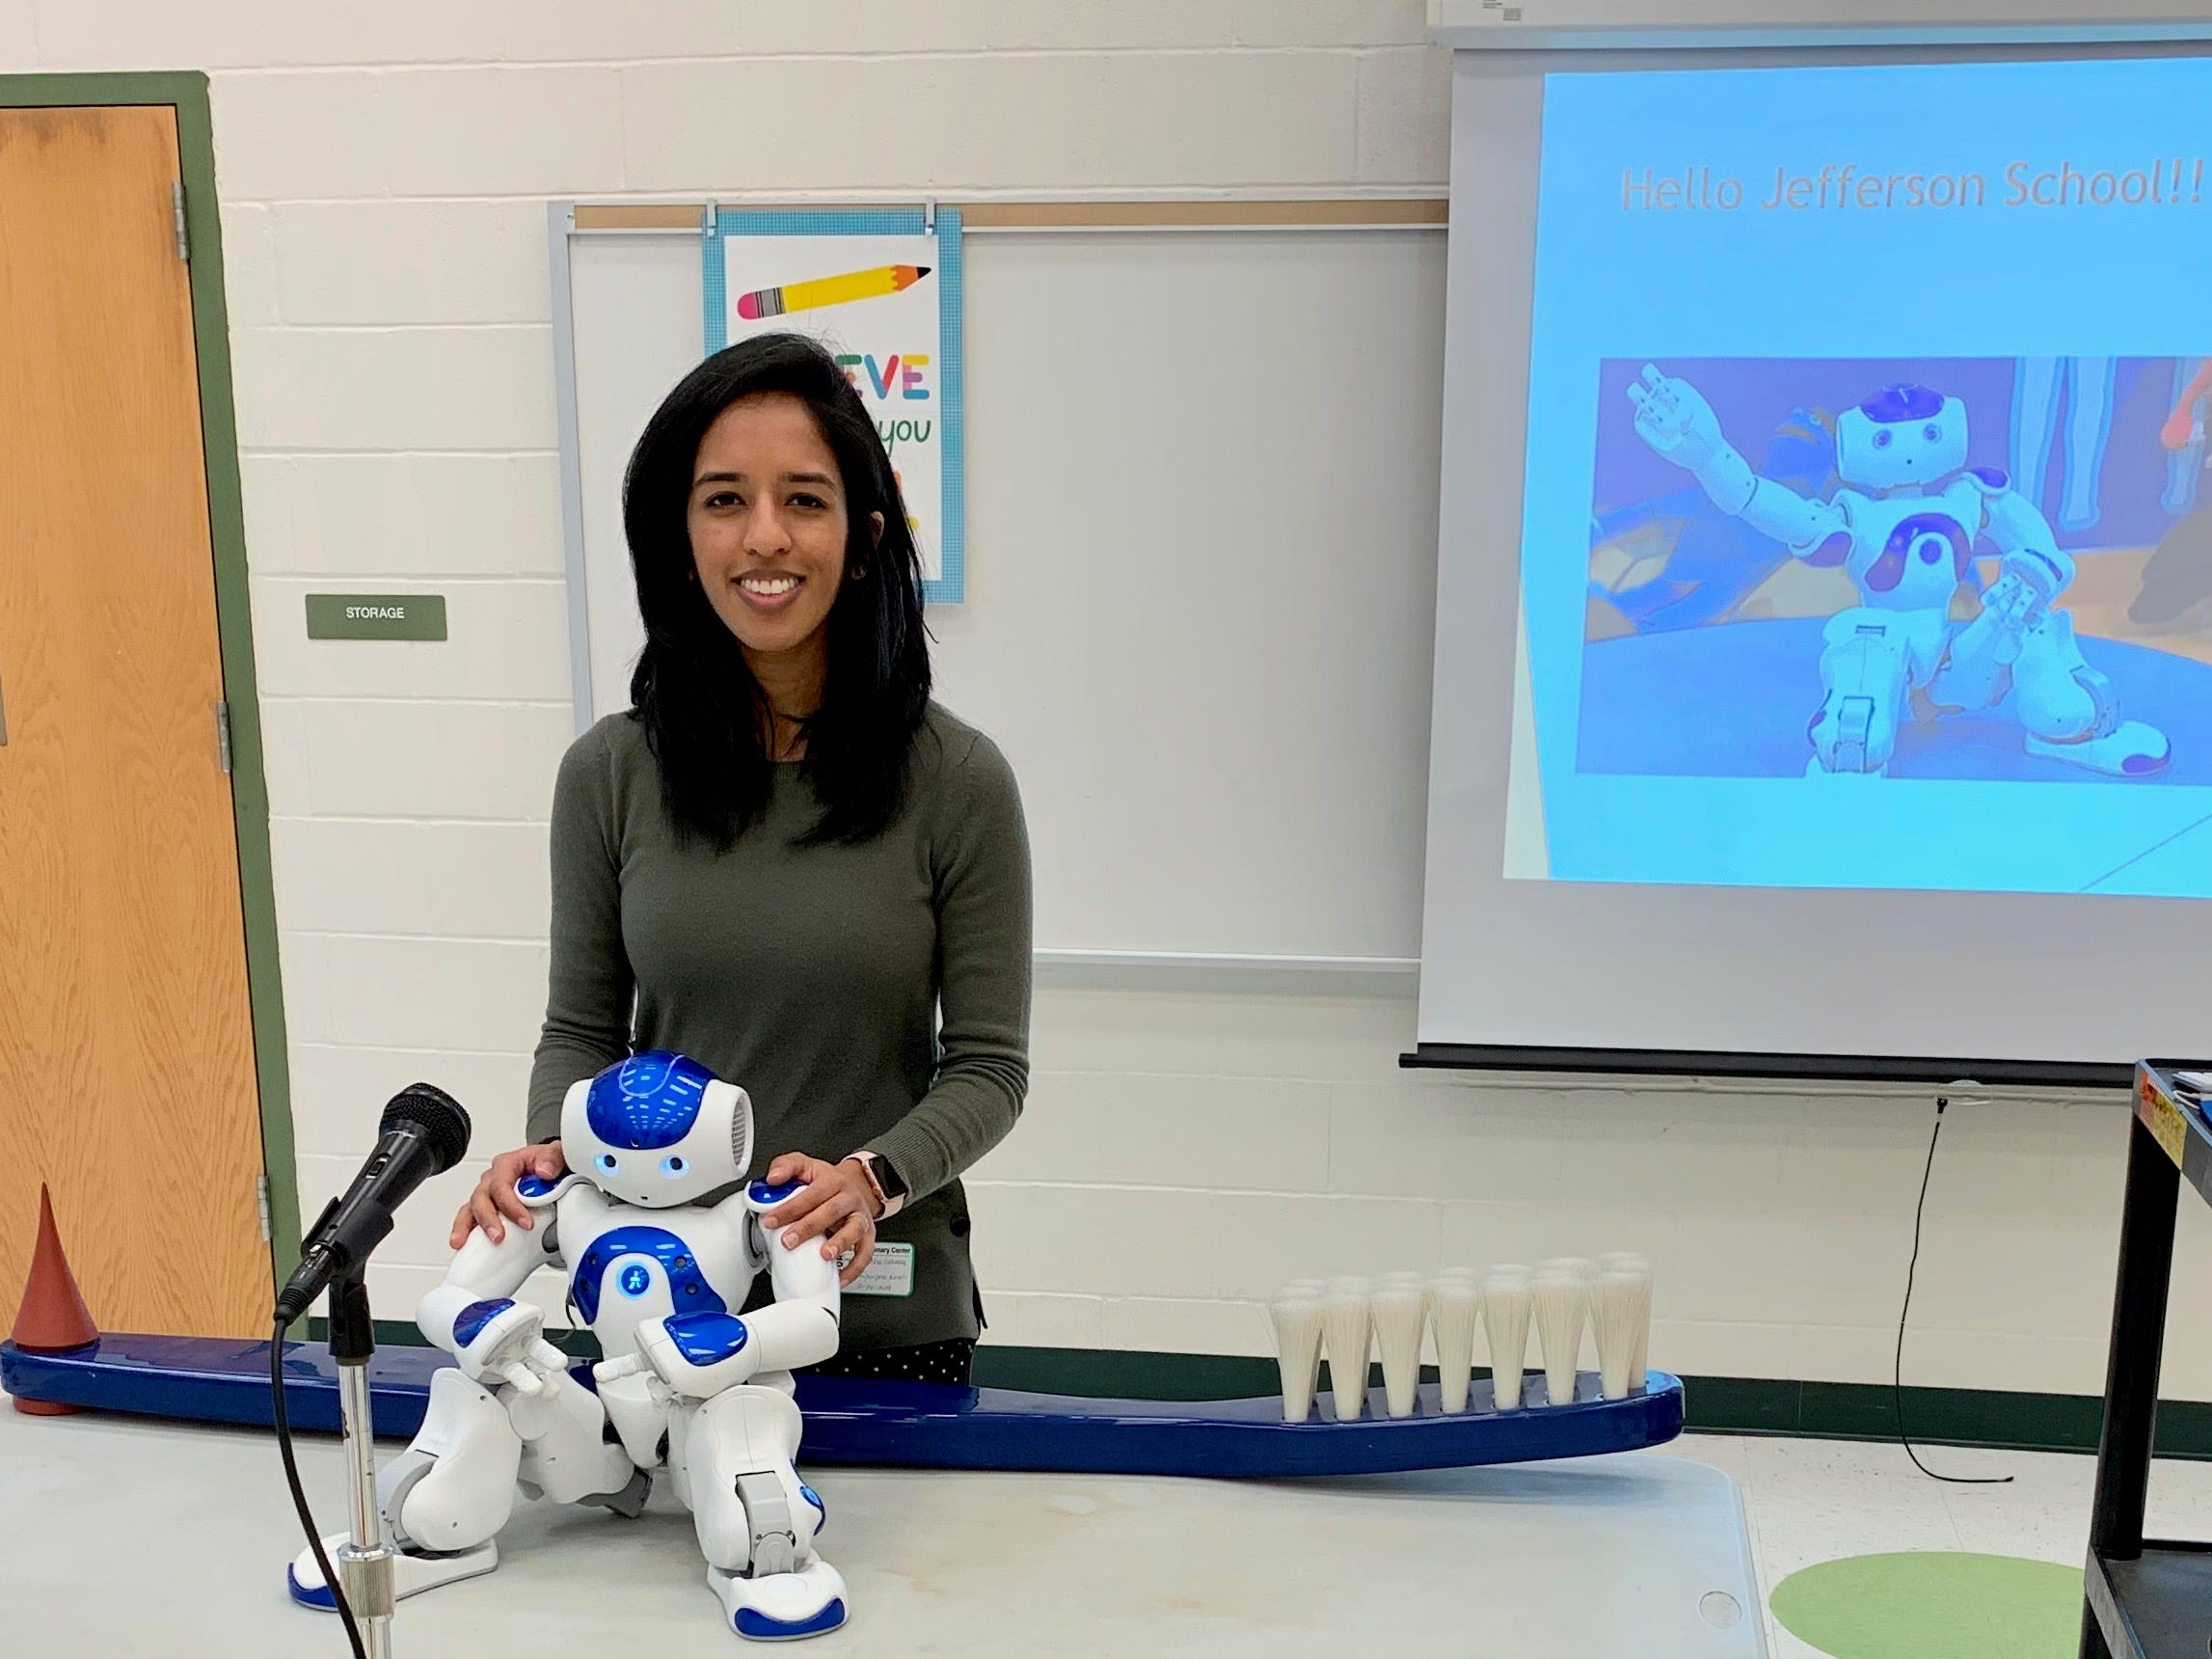 On staff for four years at Olin Dental Group, Medithe robot, here with Dr. Neha Golwala, isprogrammed in order to act asa companion along side children in a dental operatory. Medi is able to speak to children at their level and decrease their concerns, anxietyand fears when they come to the dentist.